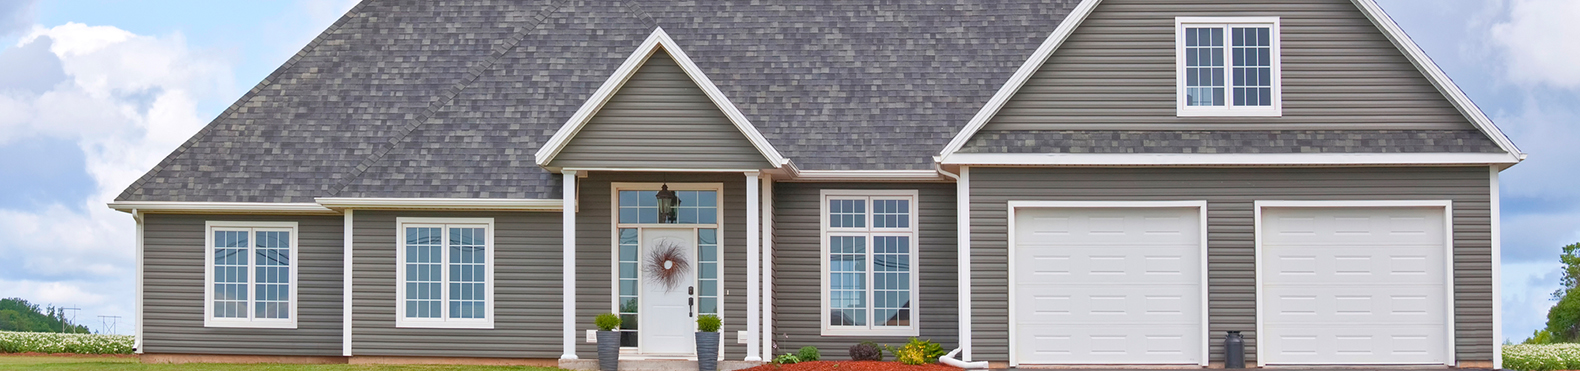 Foreclosures in NC Slide